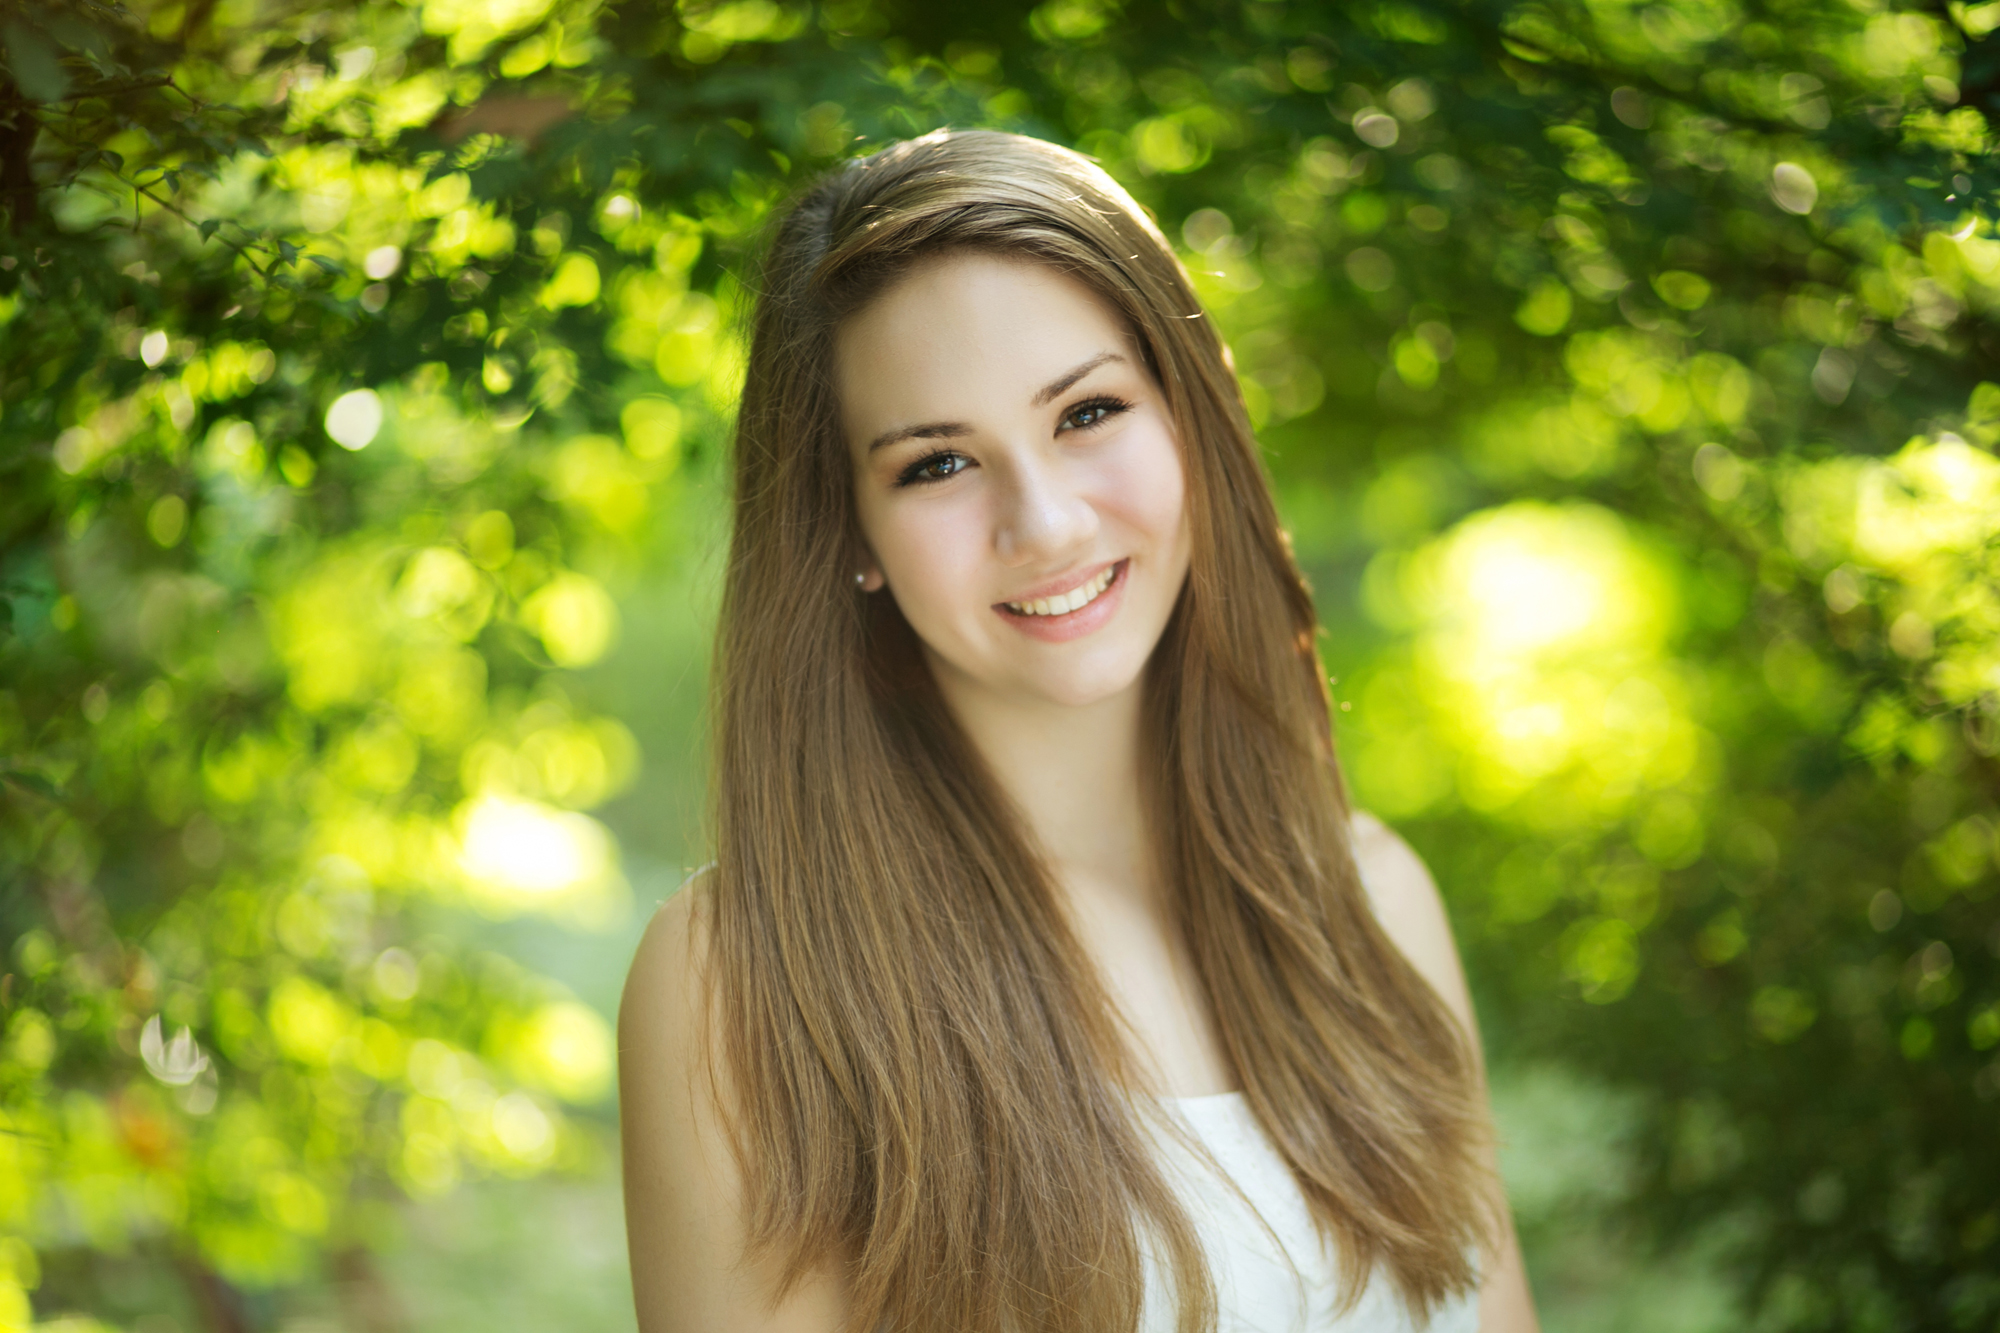 """Annika was so nice and professional. She cared about me as a person, not just a customer. Between pictures she would ask me questions about my life and what my plans were. I love the fact that SilverBox wants your personality to shine in your pictures!""      Jenna Bartok, senior"